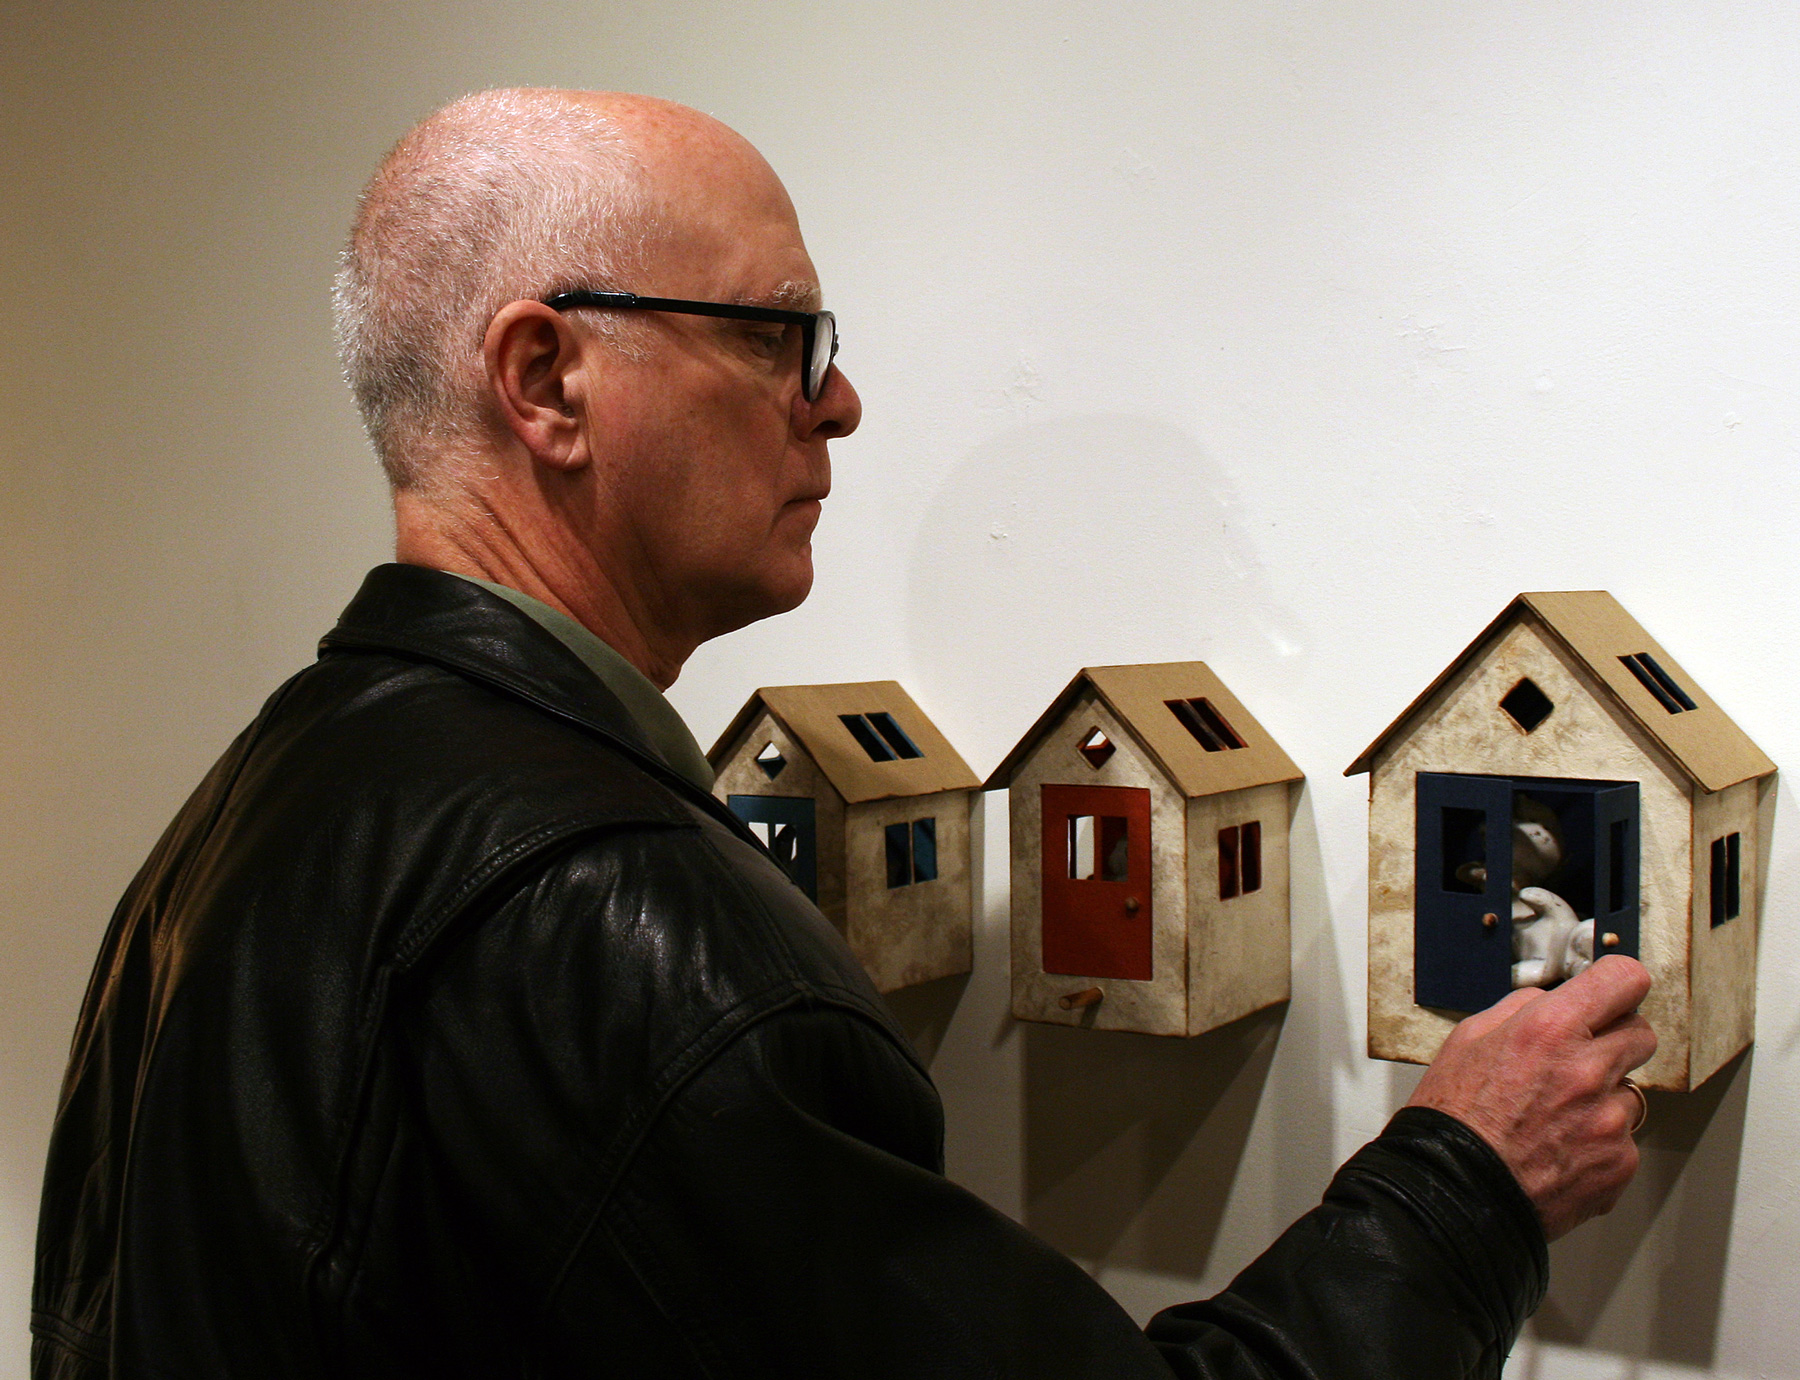 Bird-Houses-Installation-View-12_BC-with-Viewer2.jpg